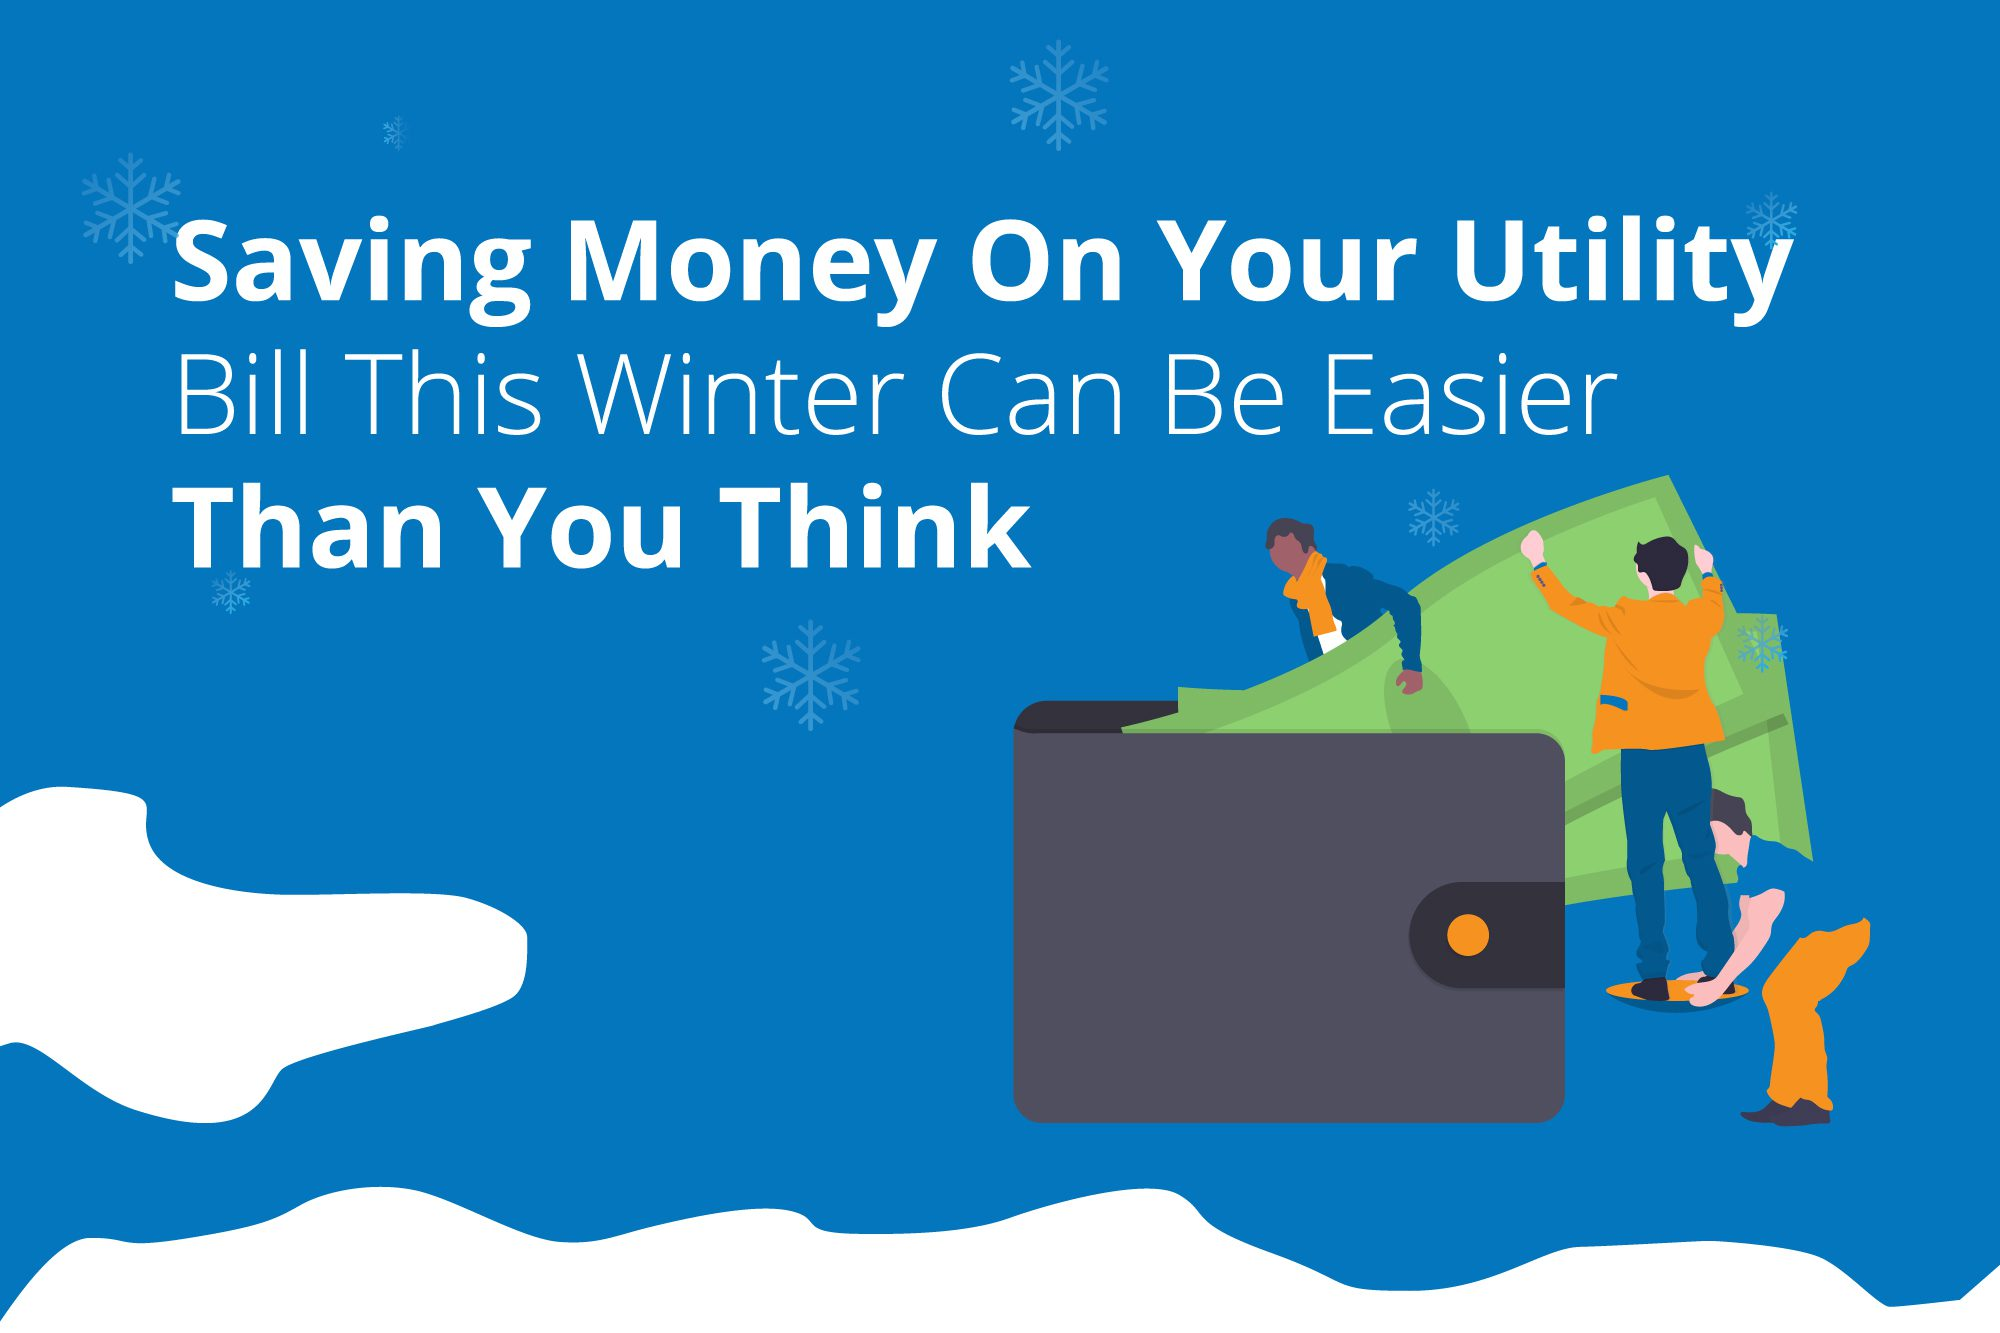 Saving money on utility bills is easier than you think